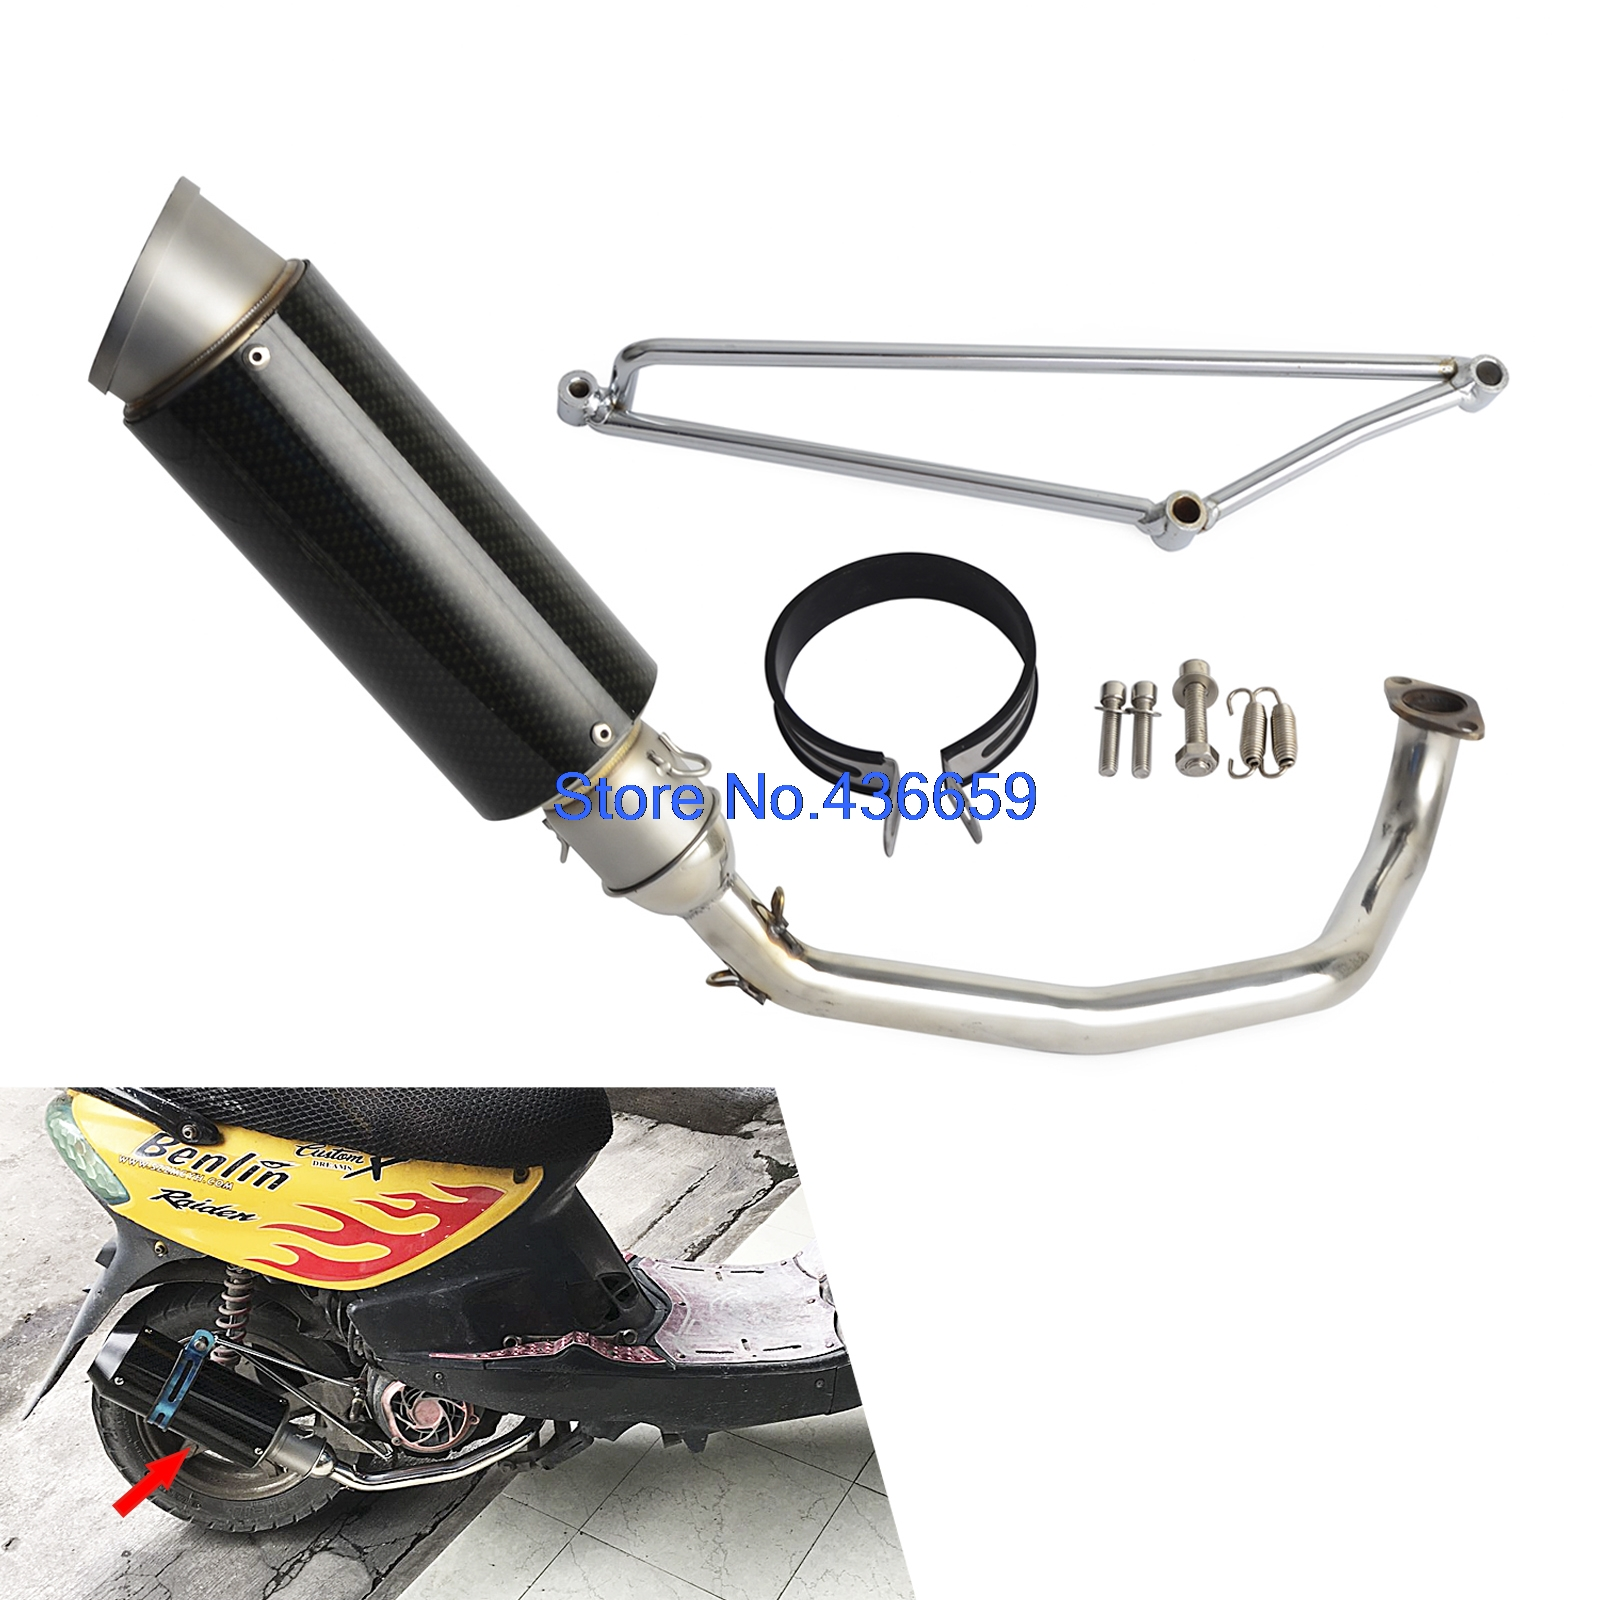 Motorcycle Stainless Steel Exhaust Muffler System For Scooters GY6 Engine 125cc 150cc